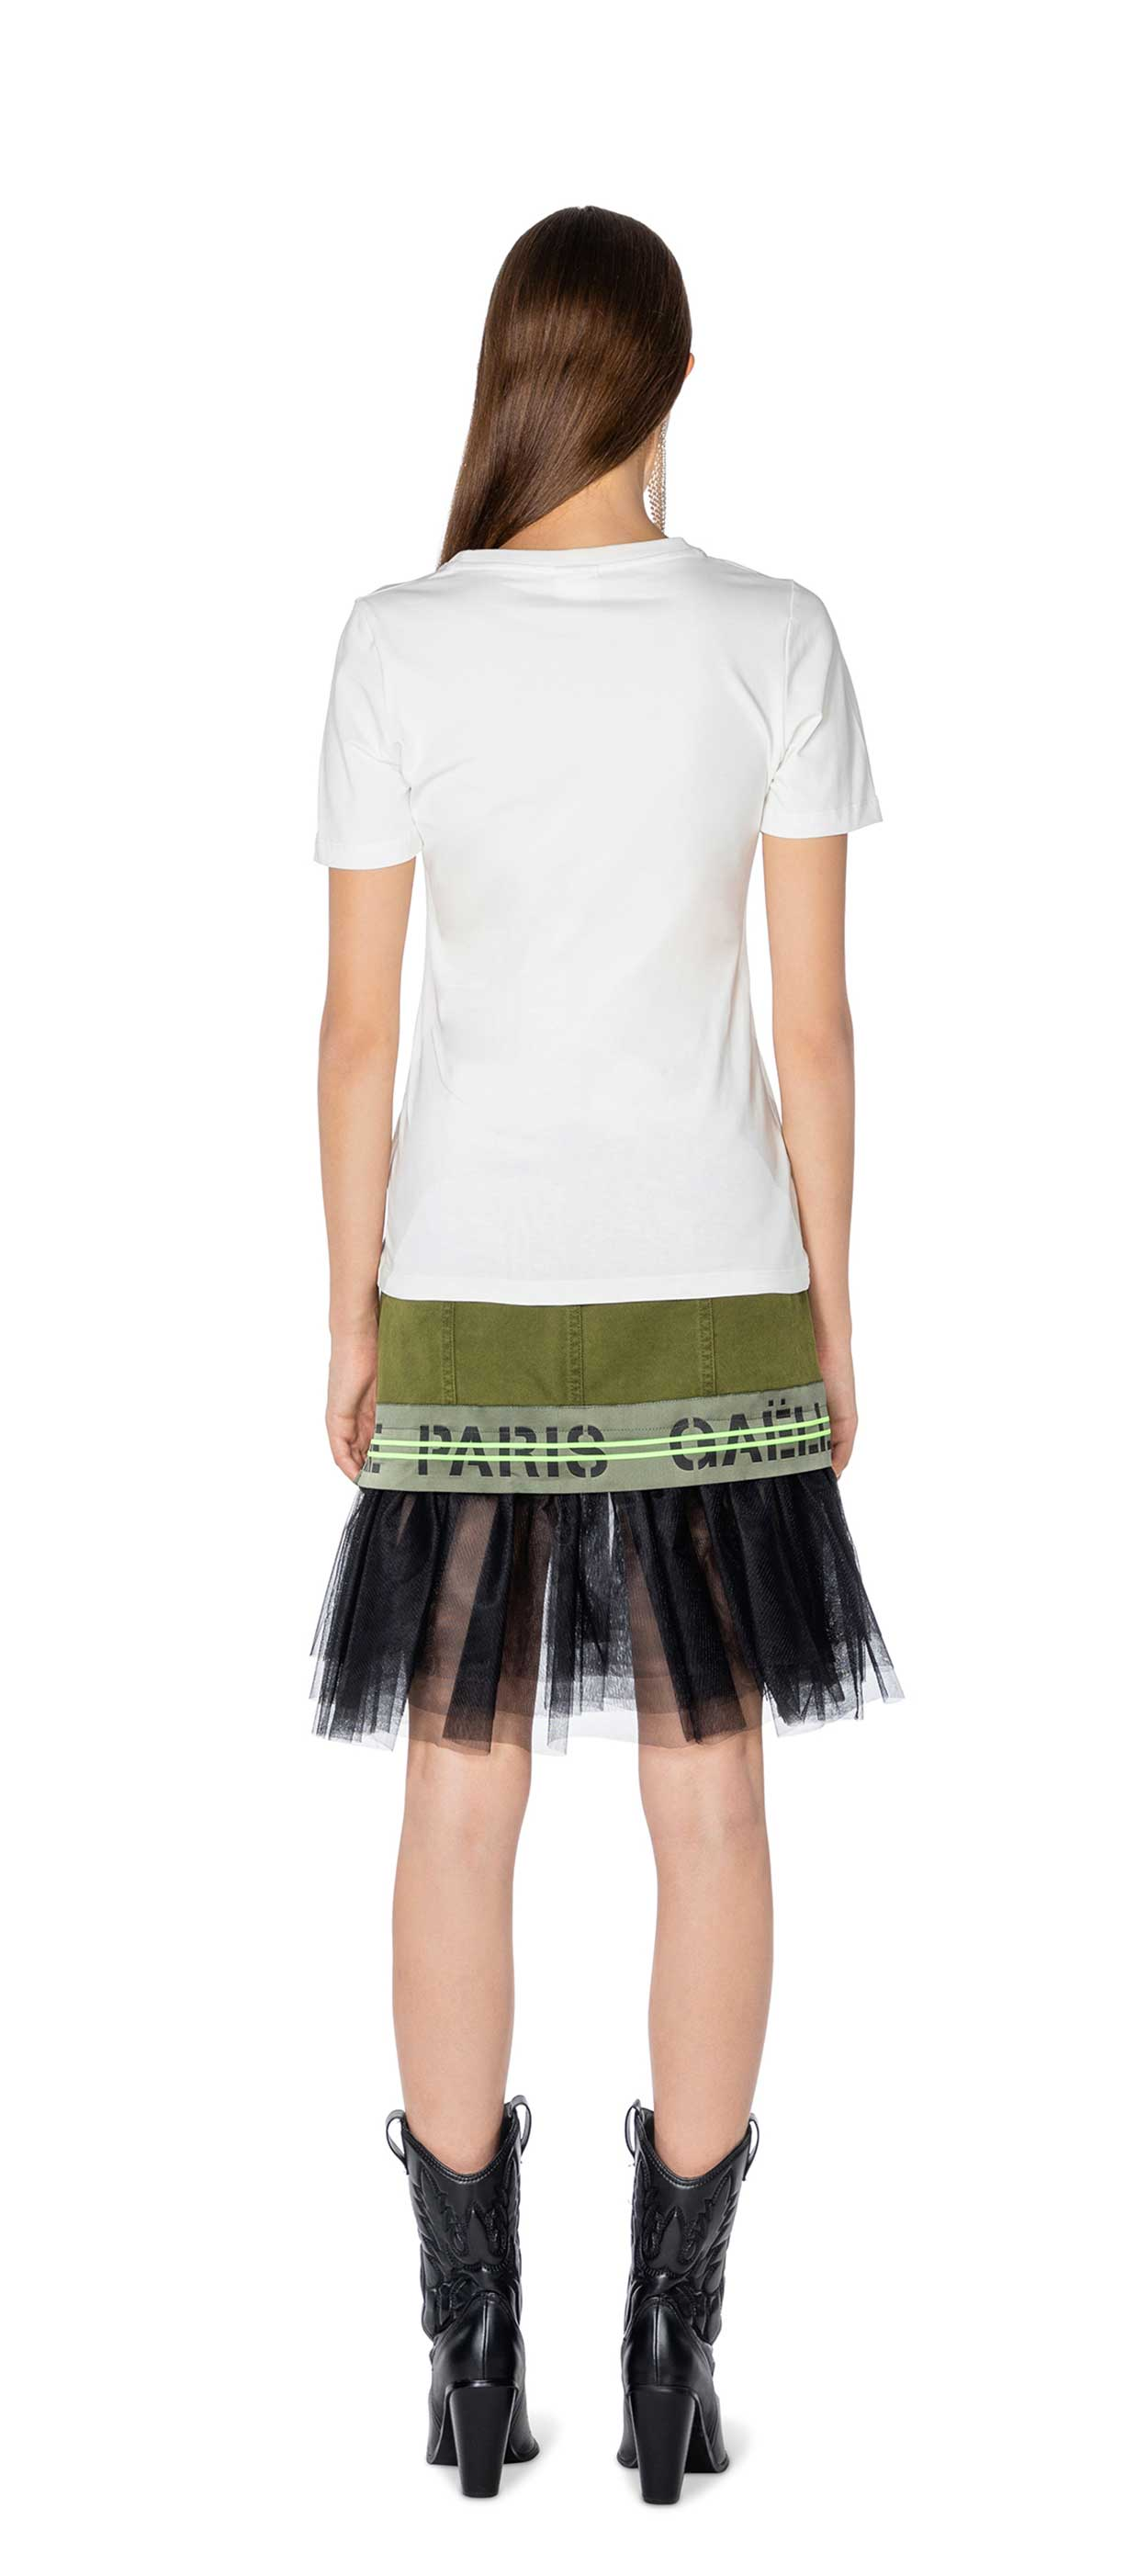 T-SHIRT - GBD7112 - GAELLE PARIS